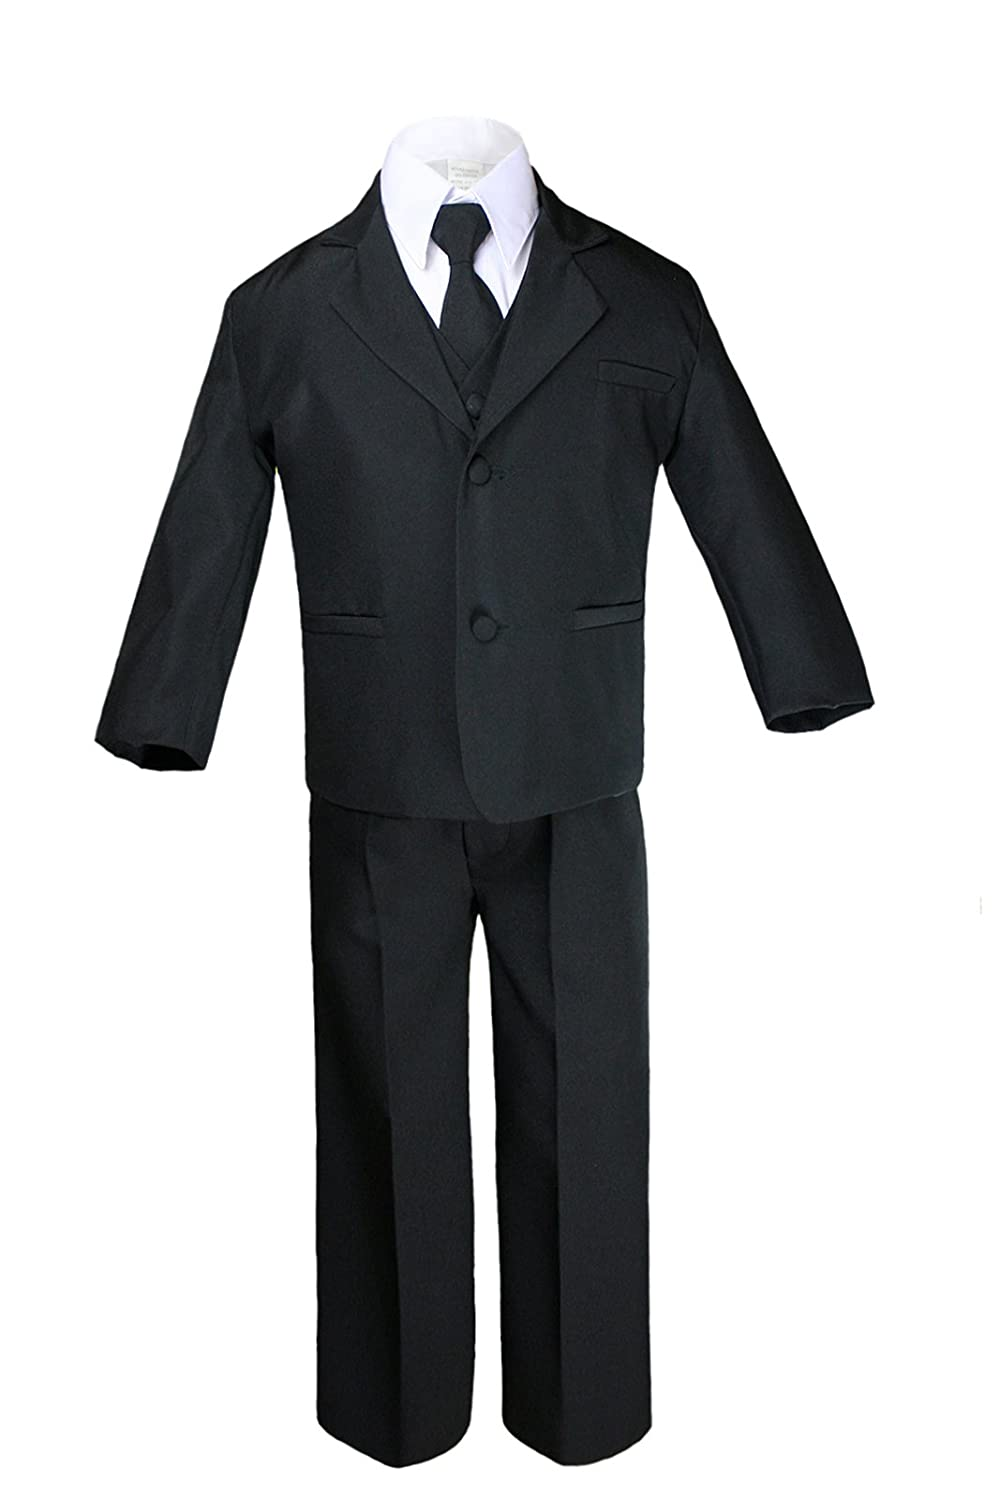 Unotux 7pc Boys Black Suit with Satin Fuchsia Vest Set from Baby to Teen 20